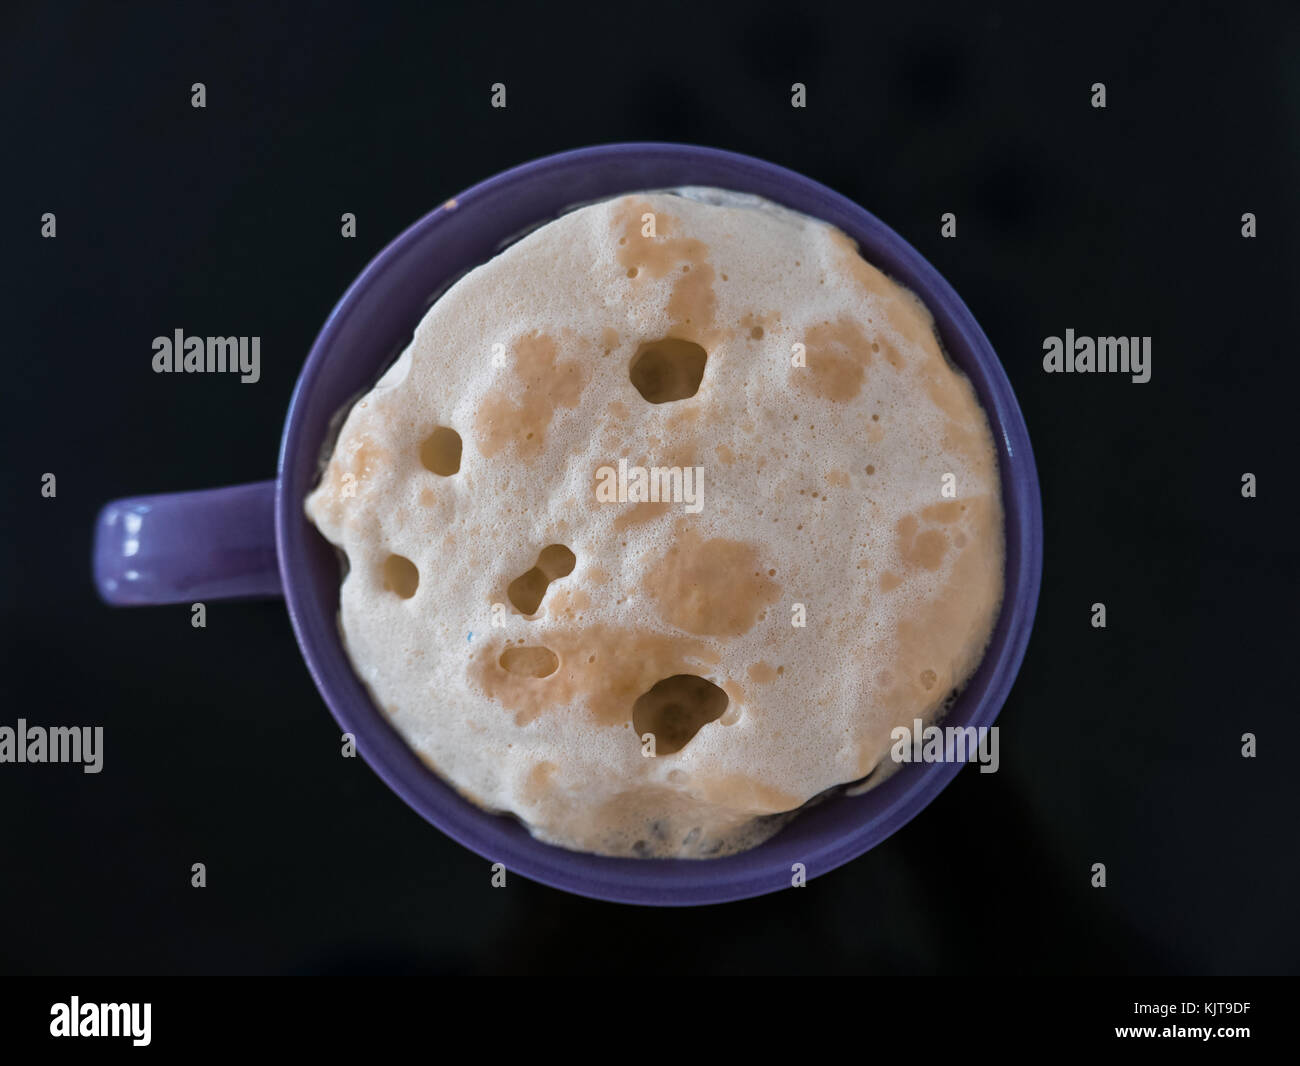 Close up of baker's yeast in a purple cup on black background. - Stock Image